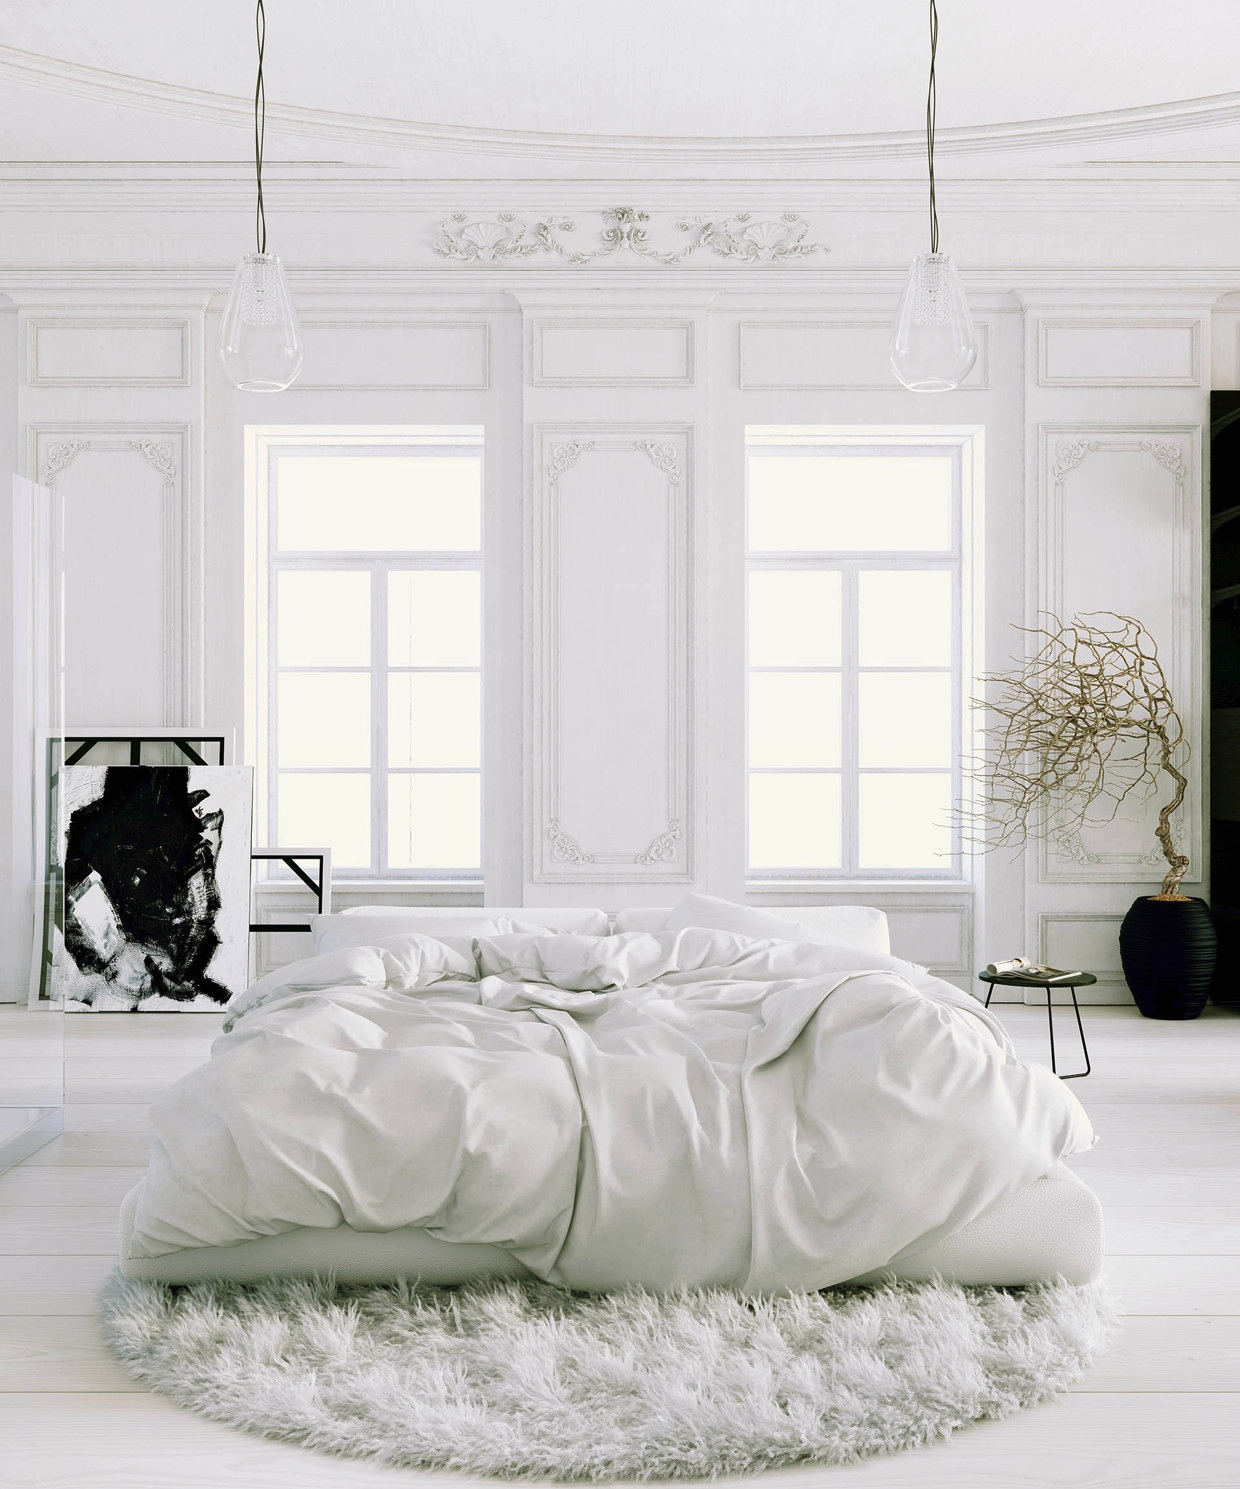 41 white bedroom interior design ideas pictures Parisian style home